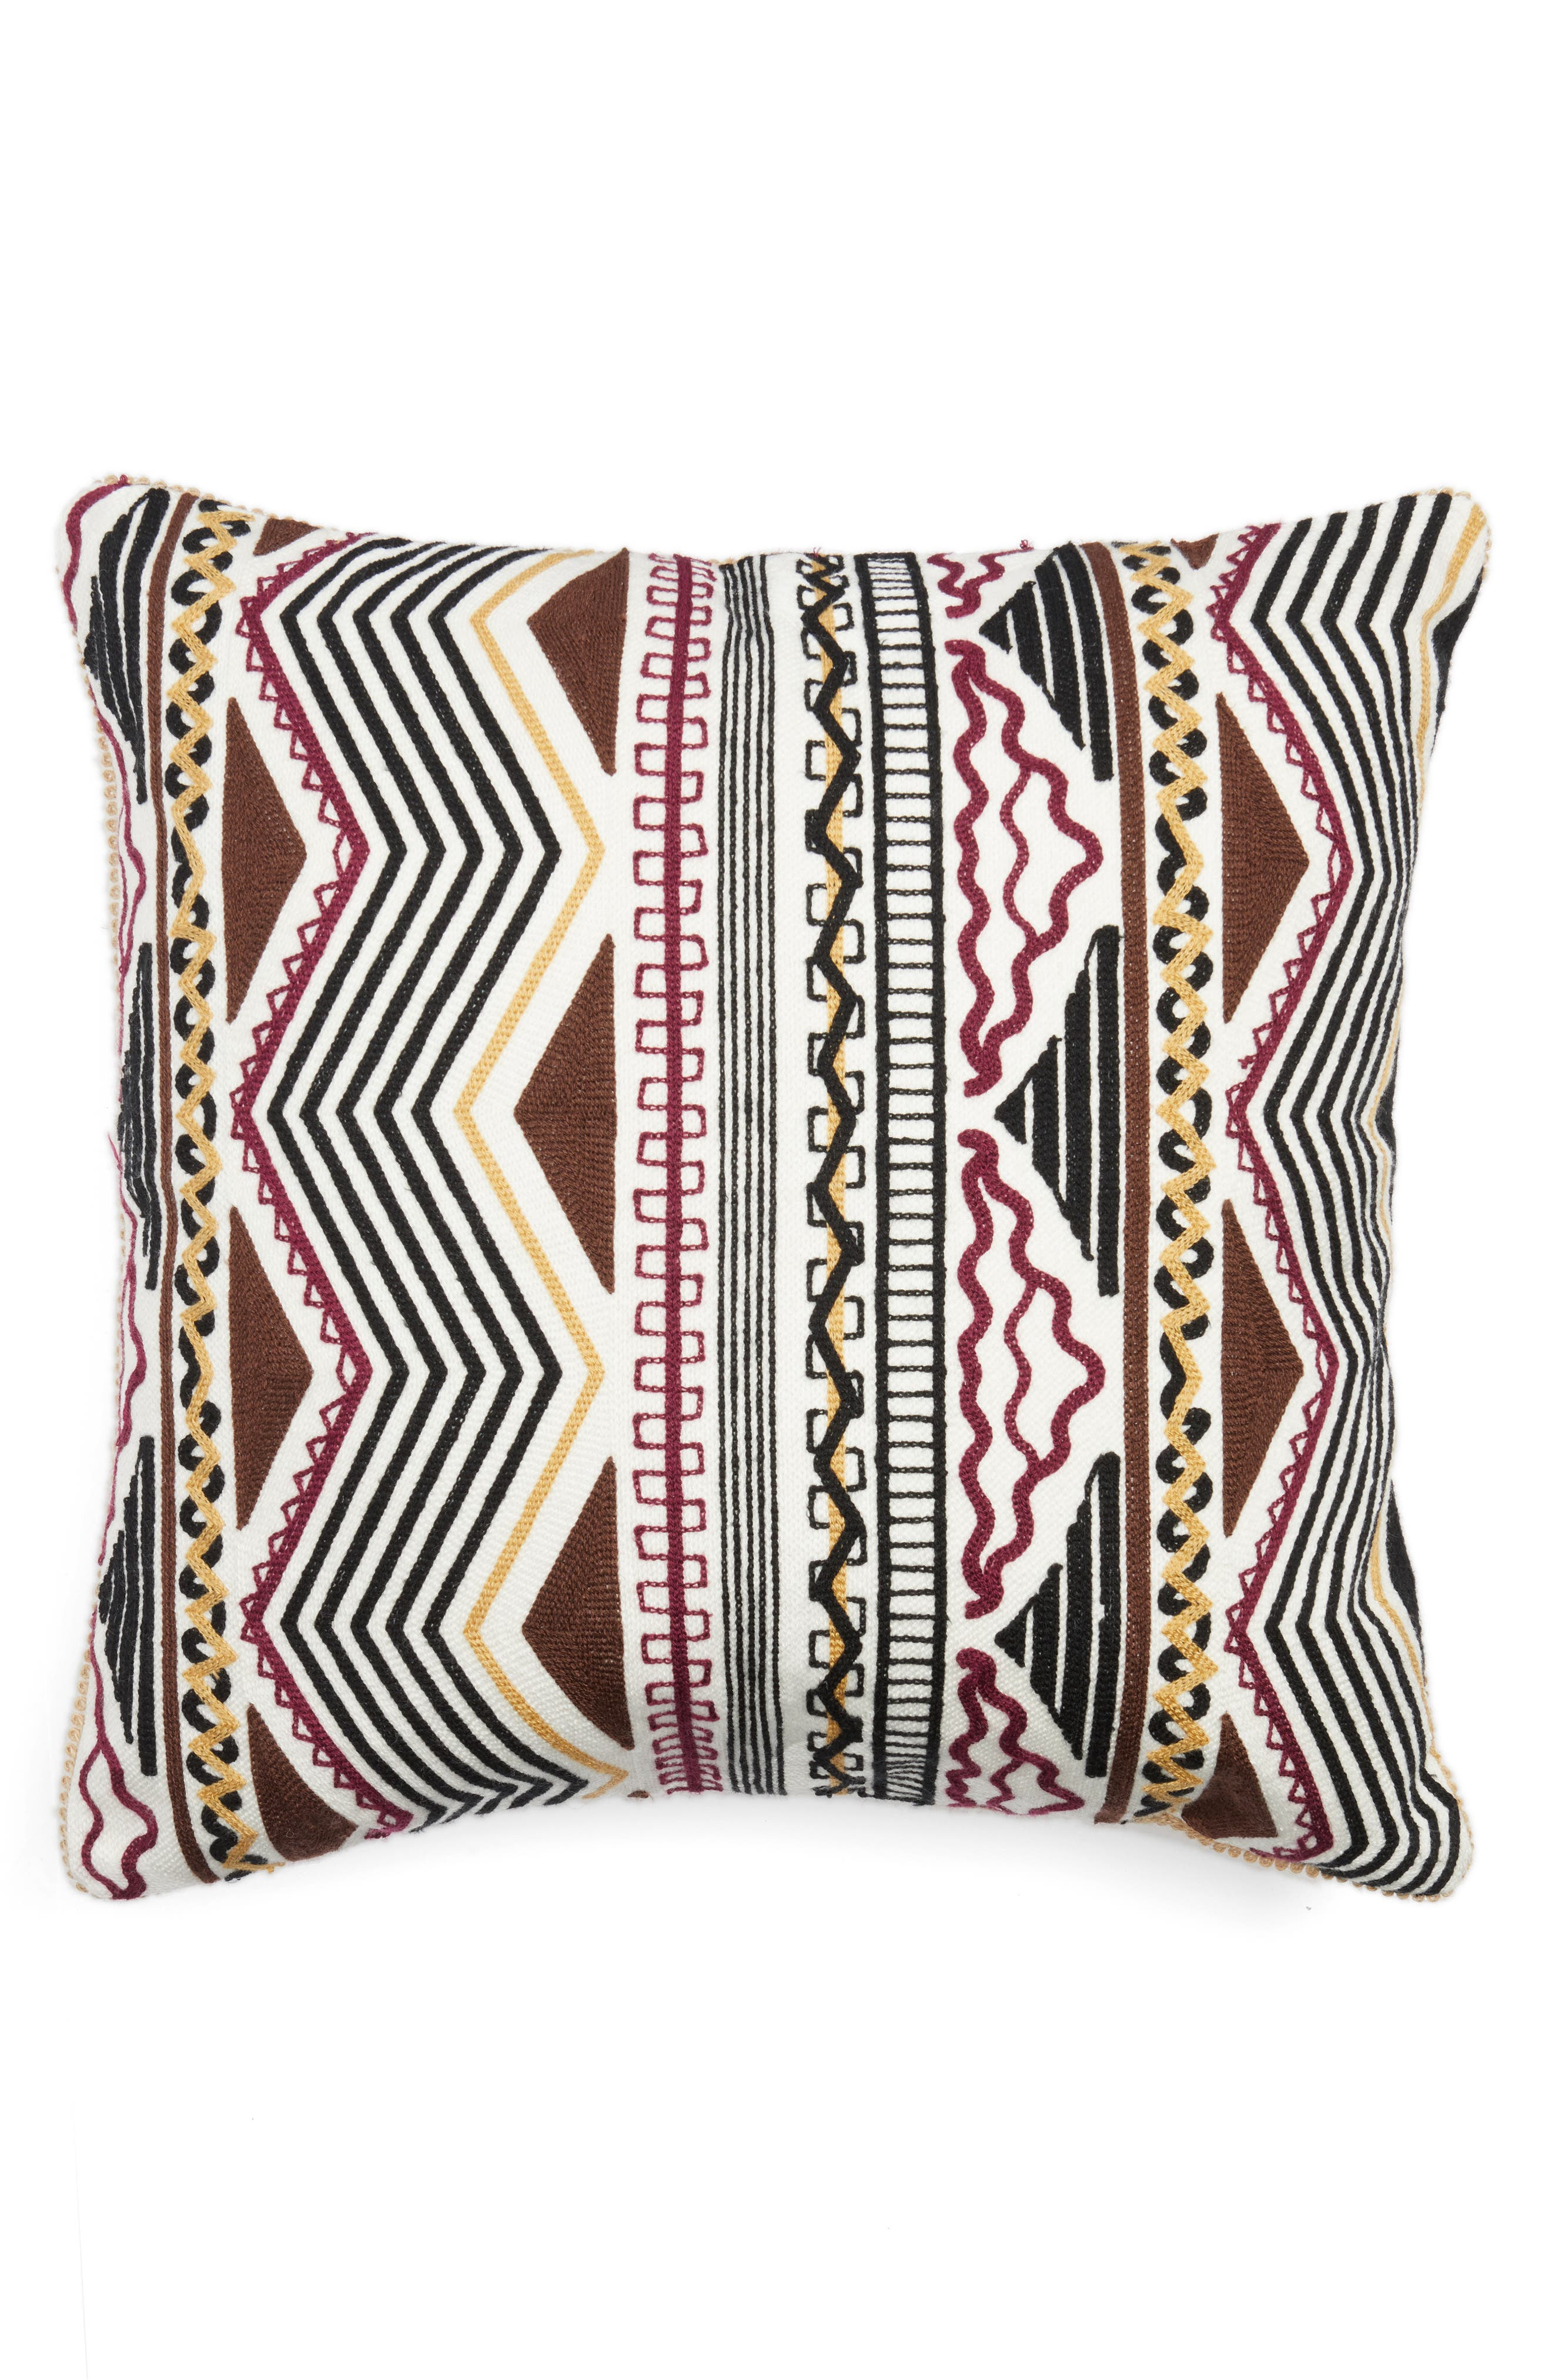 Main Image - Levtex Zander Embroidered Pillow